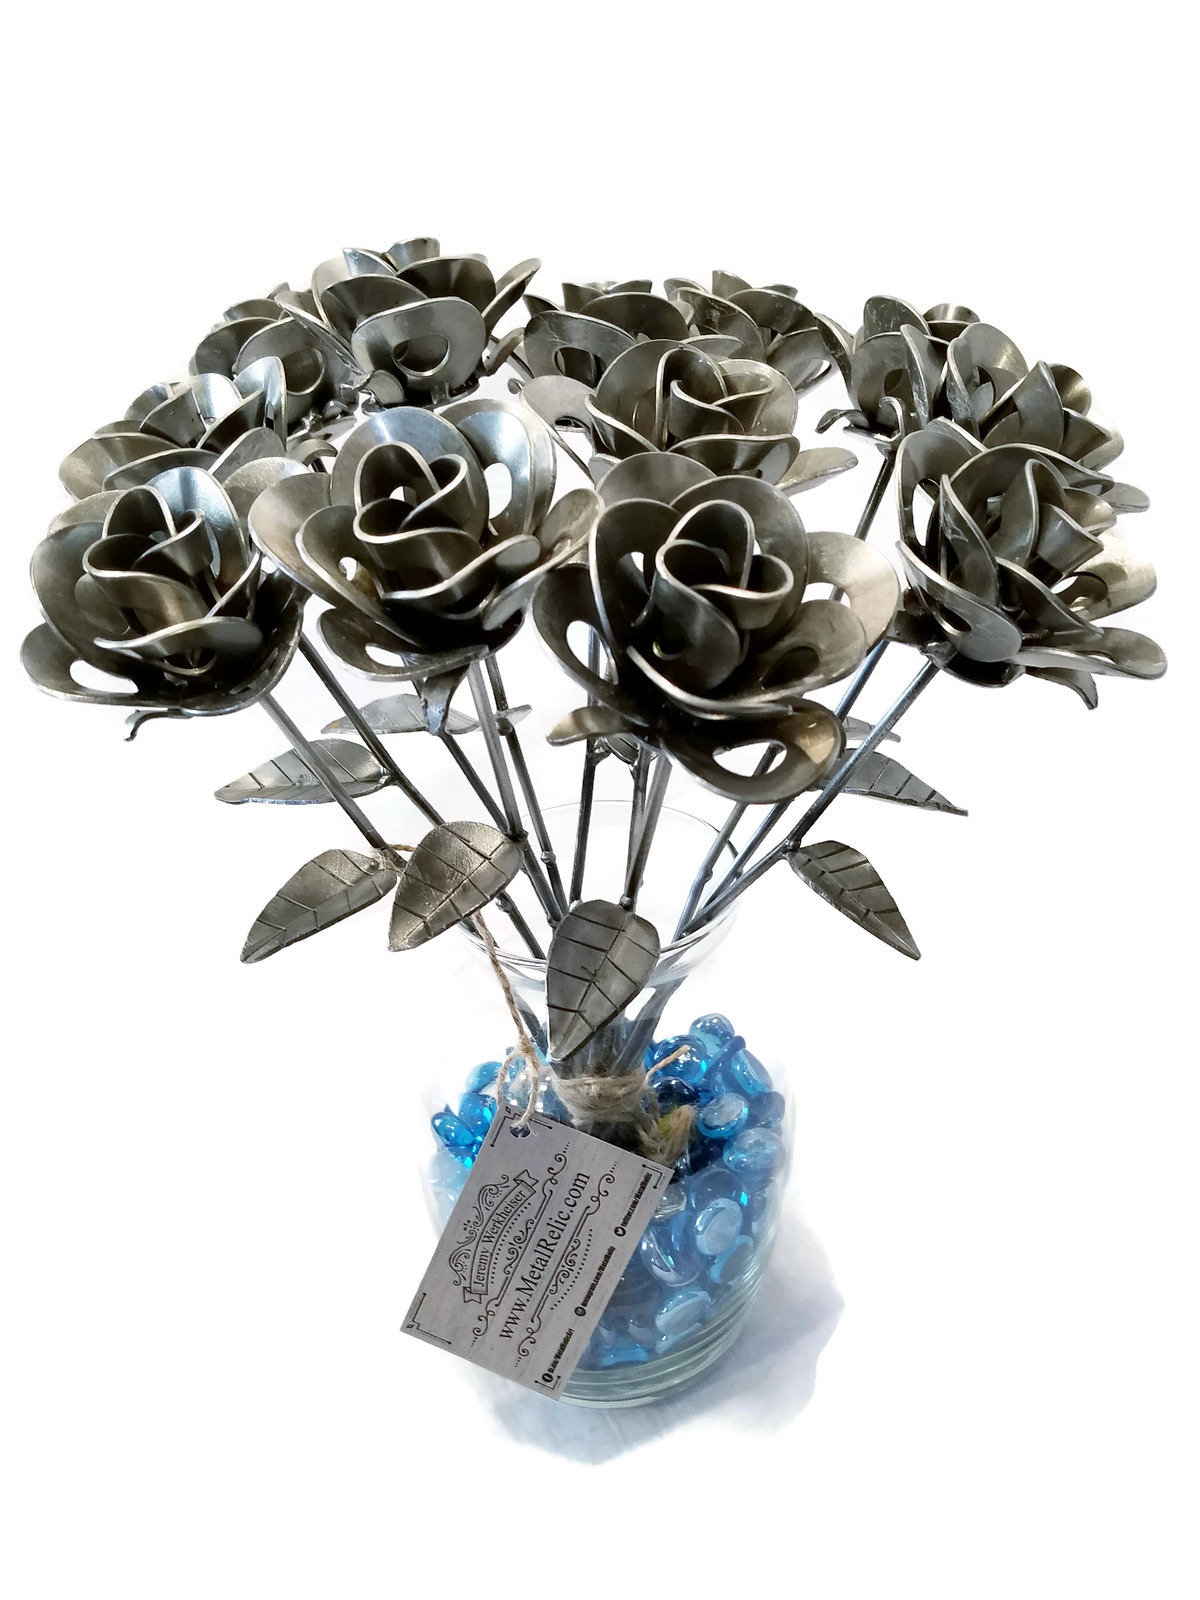 One Dozen 12 Metal Steel Forever Roses Created By Welding Scrap Steampunk Style Making Unique Gifts And Modern Rustic Home Decor